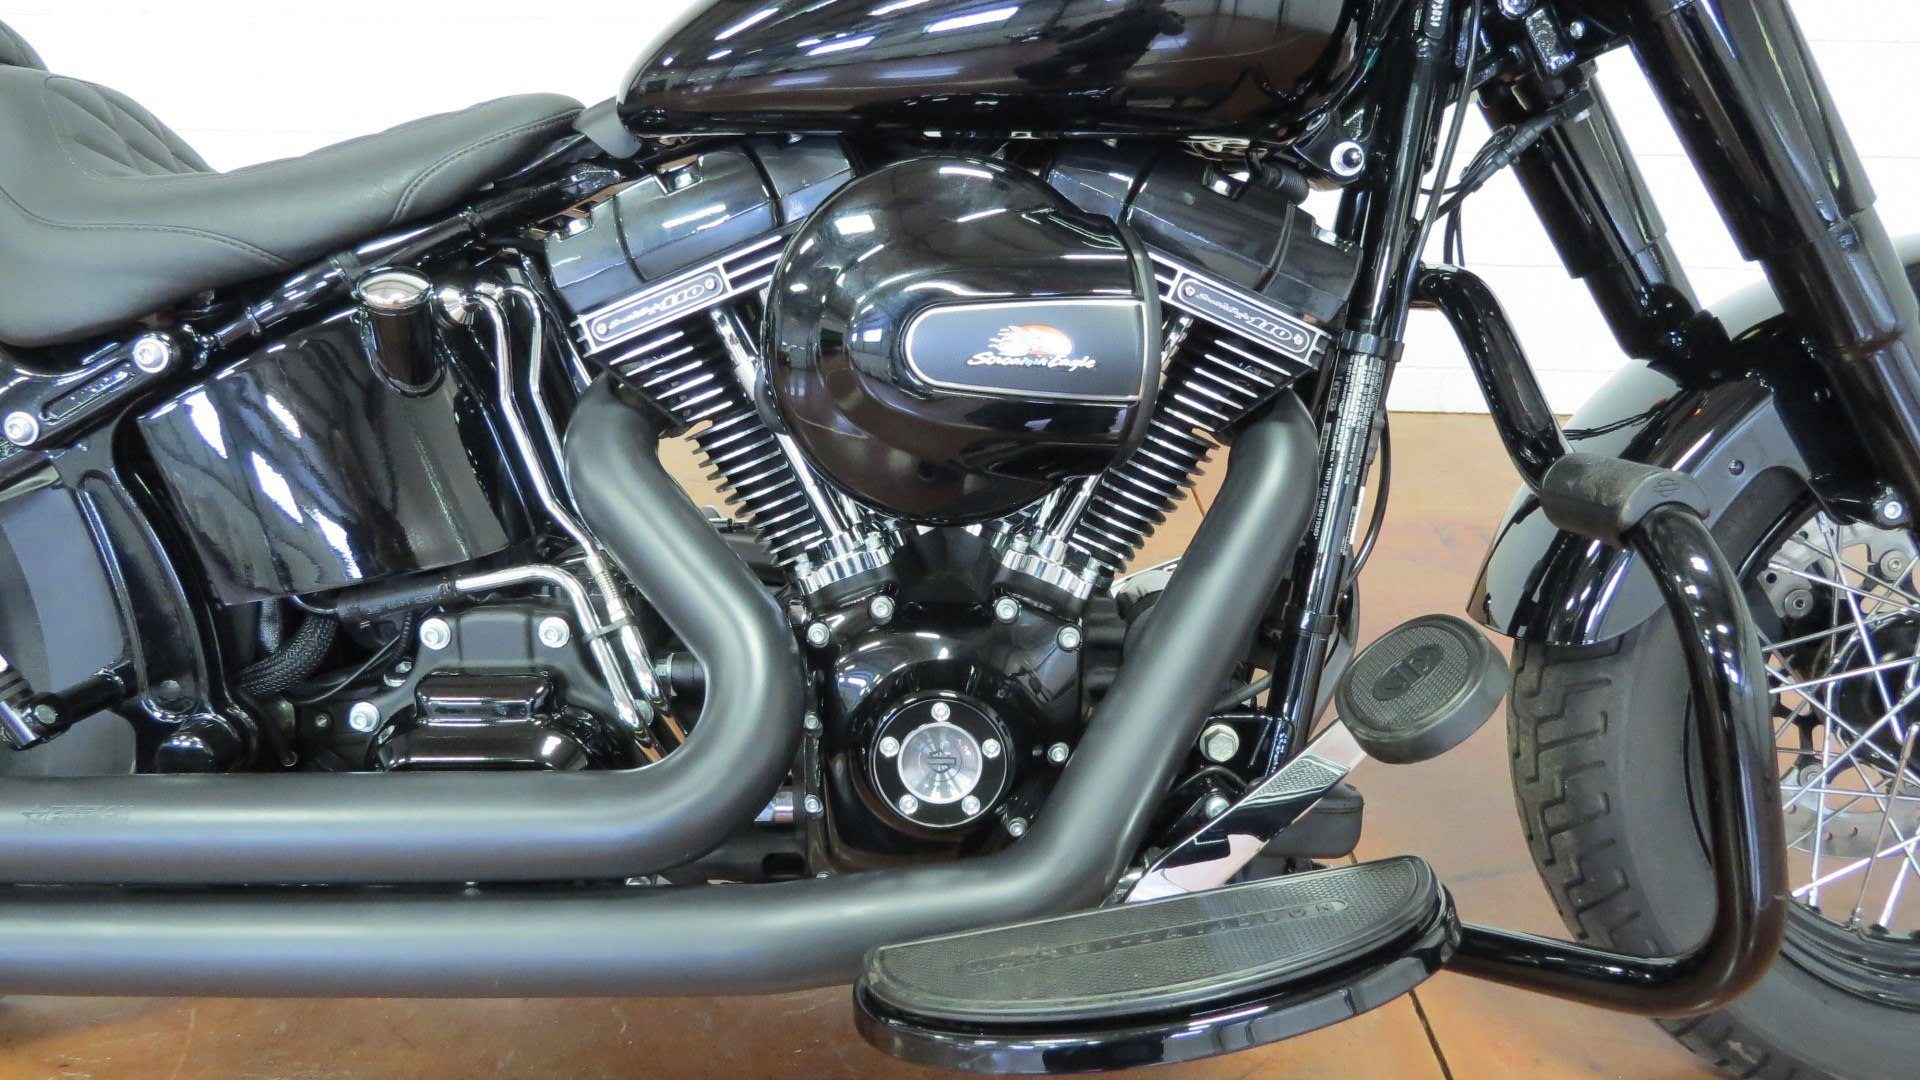 2016 Harley-Davidson Softail Slim® S in Sunbury, Ohio - Photo 4